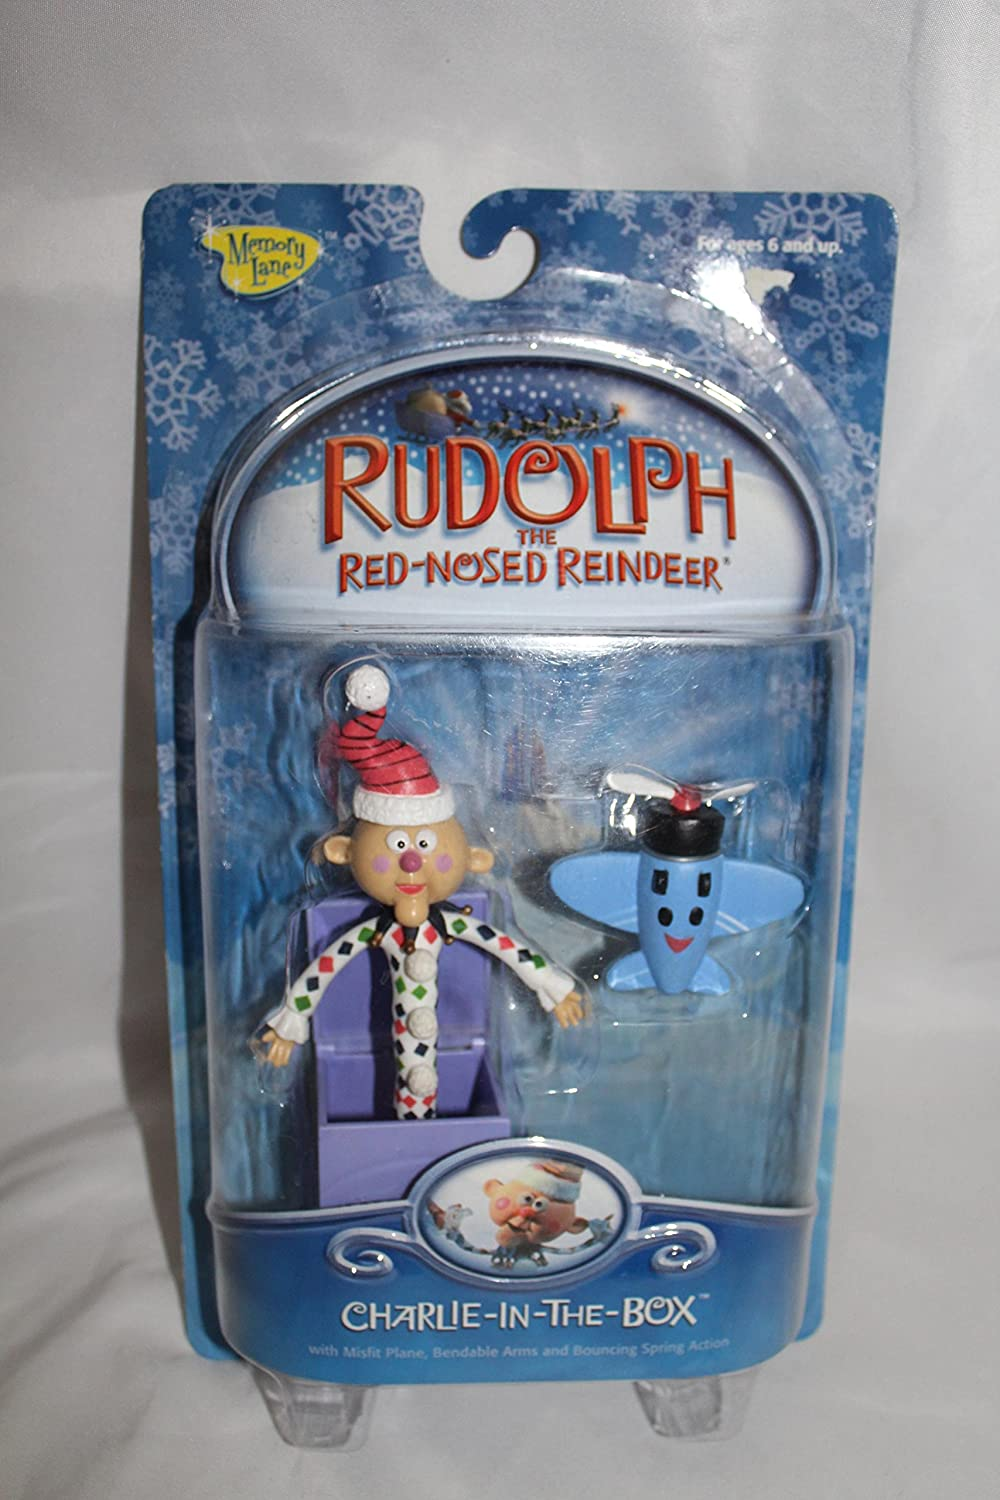 Amazon.com: Rudolph the Red-nosed Reindeer Charlie in the Box Action ...